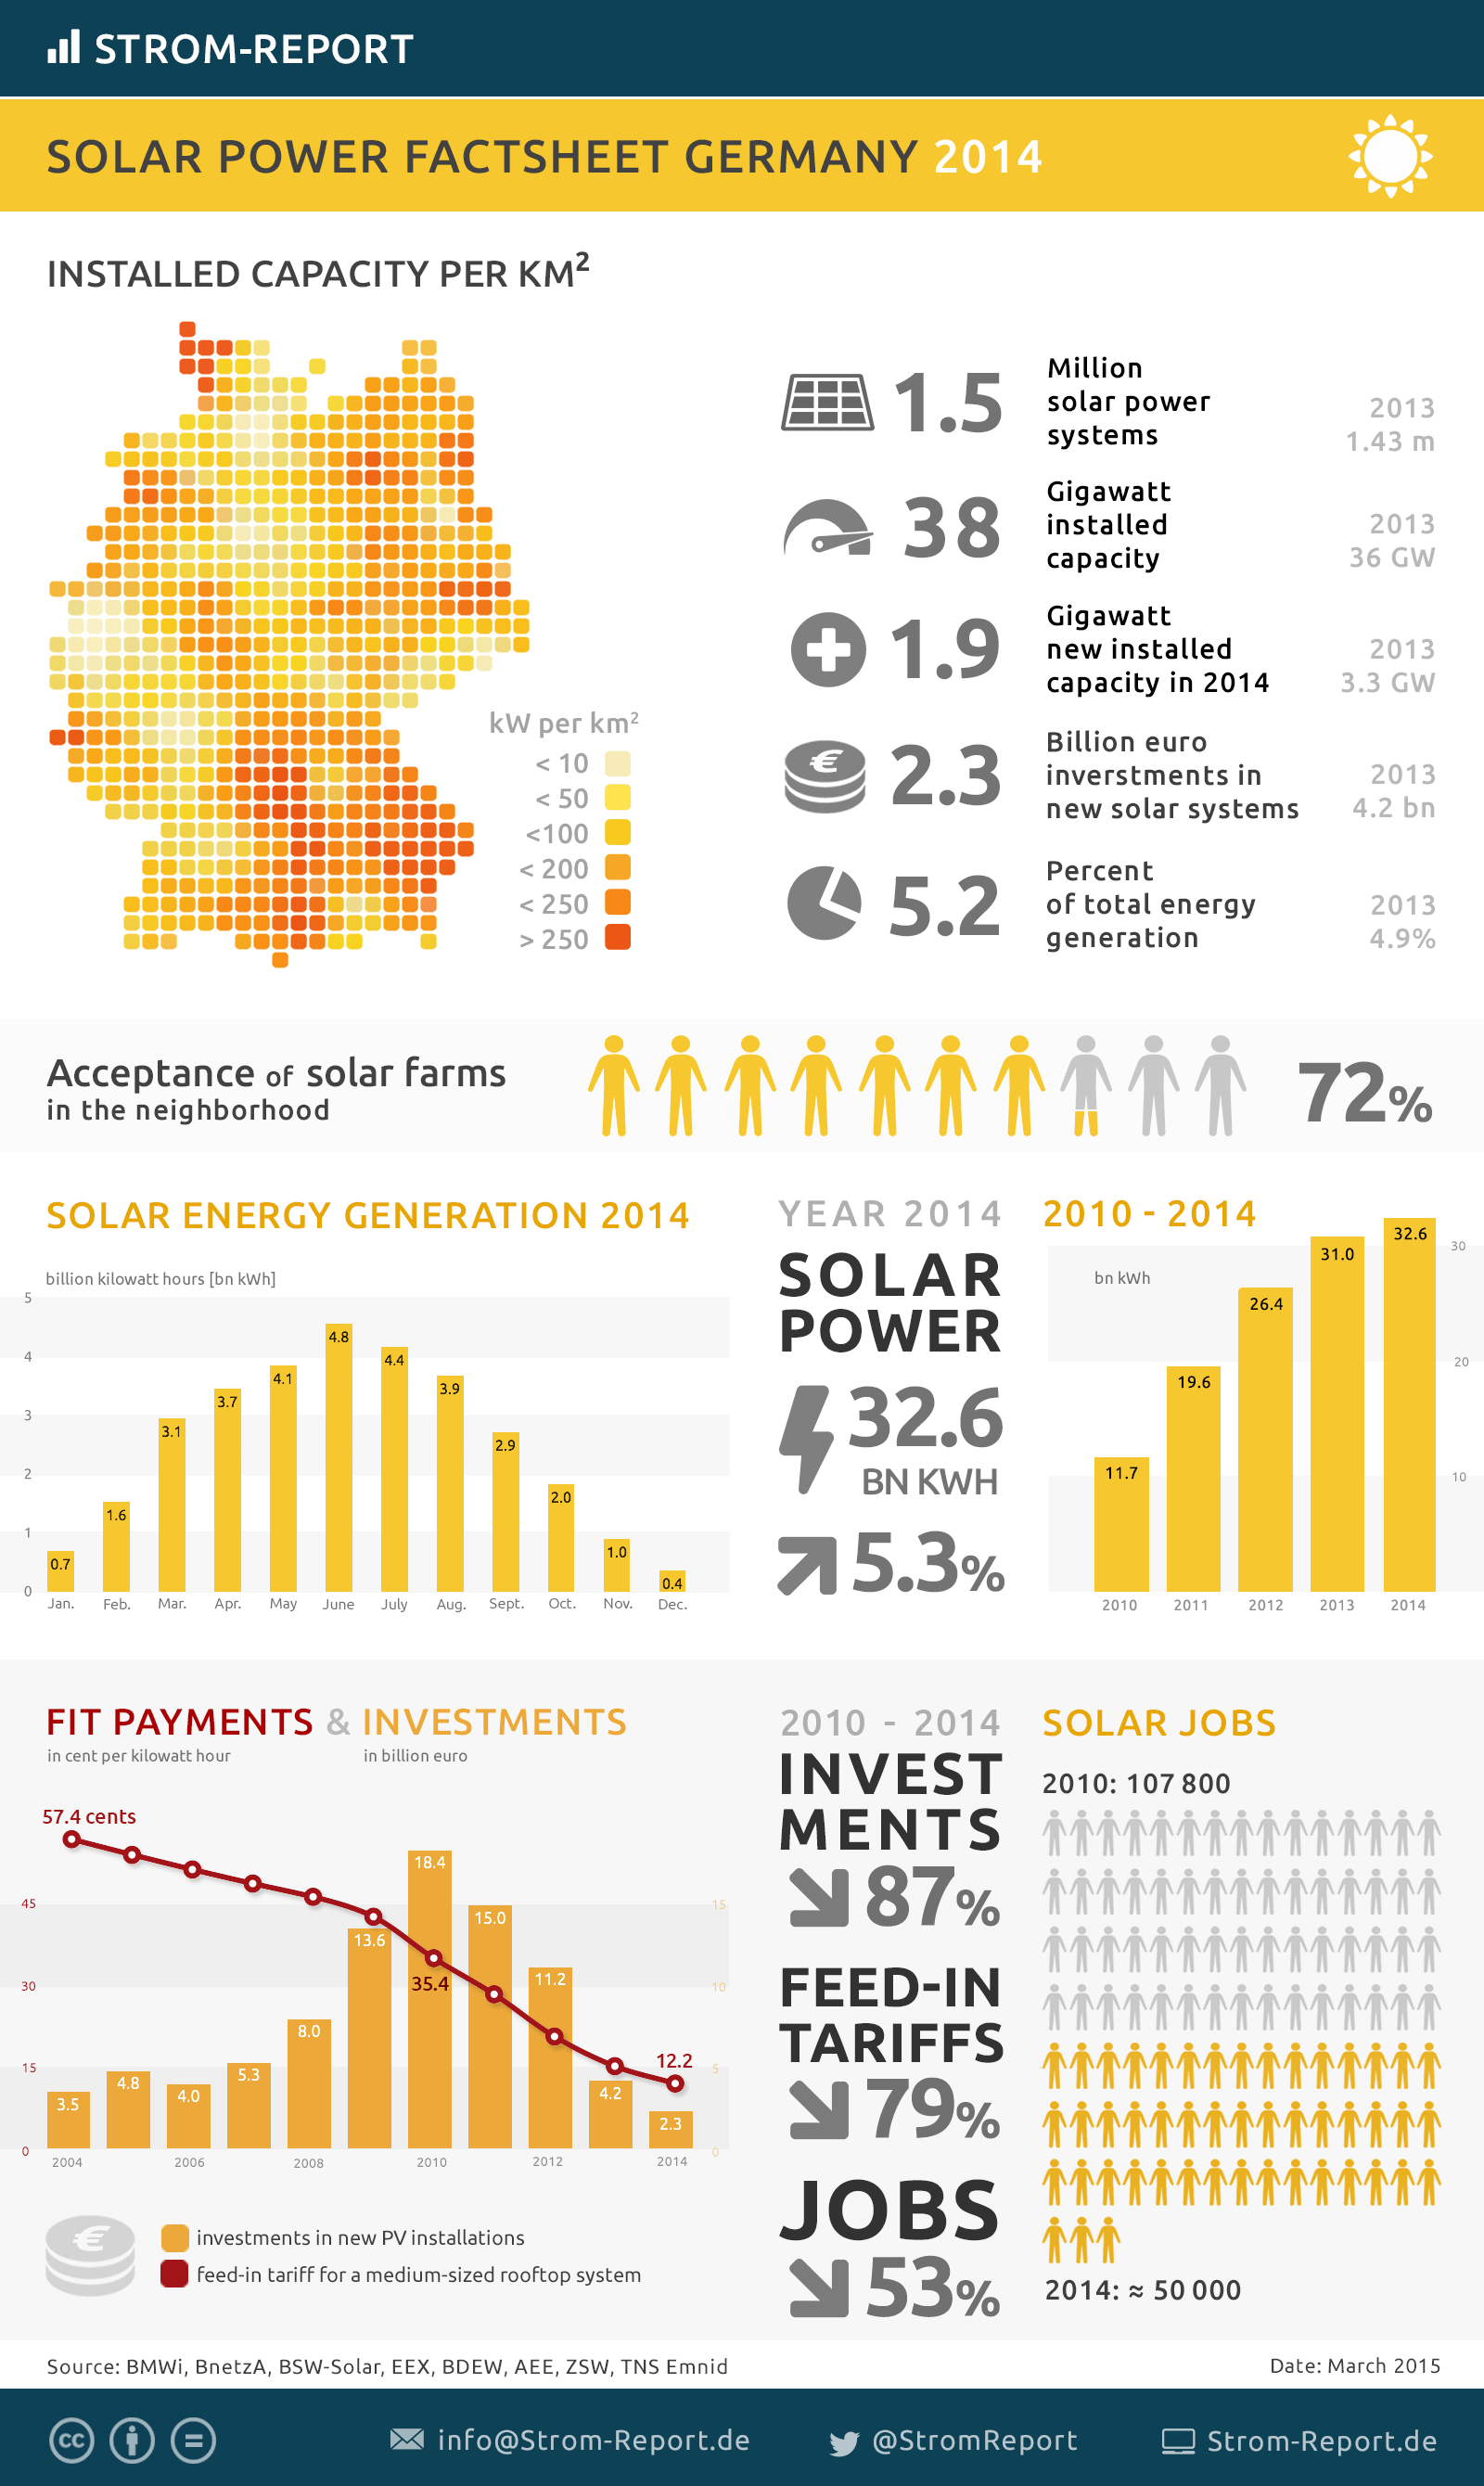 Facts about Photovoltaics in Germany | Solar Factsheet